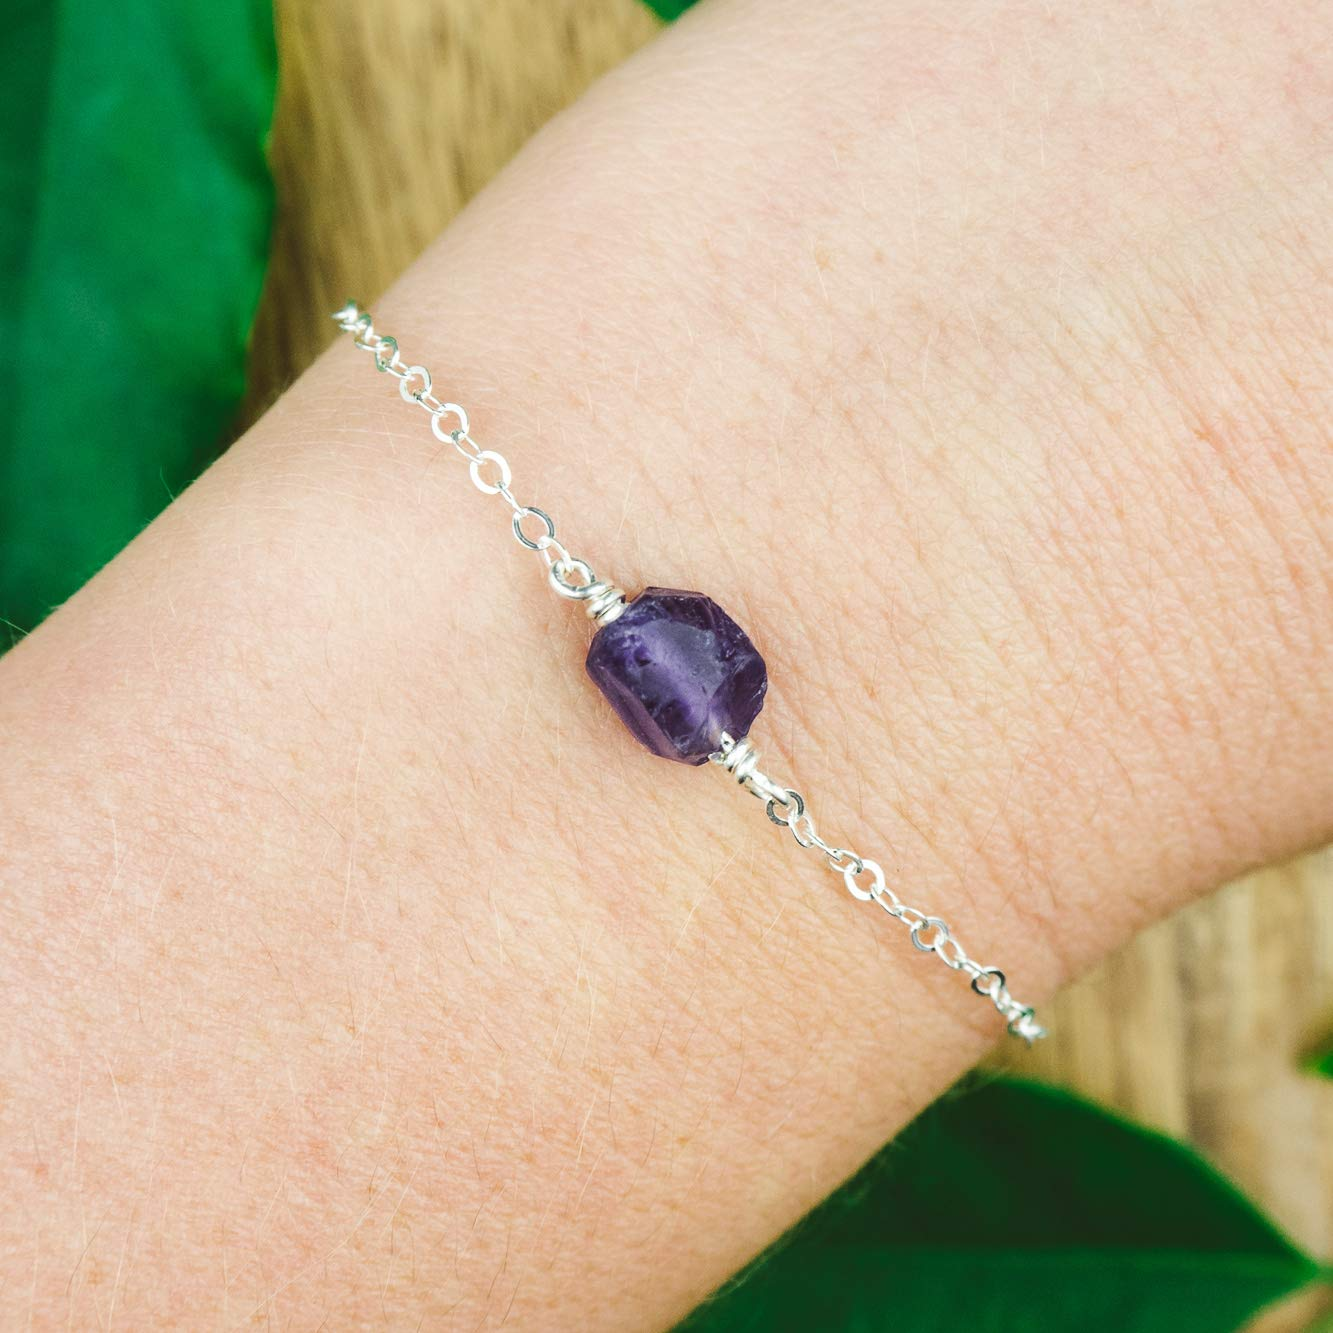 Genuine amethyst stones and adjustable length as links attached Perfectly matched. Amethyst Bracelet set in sterling silver 925